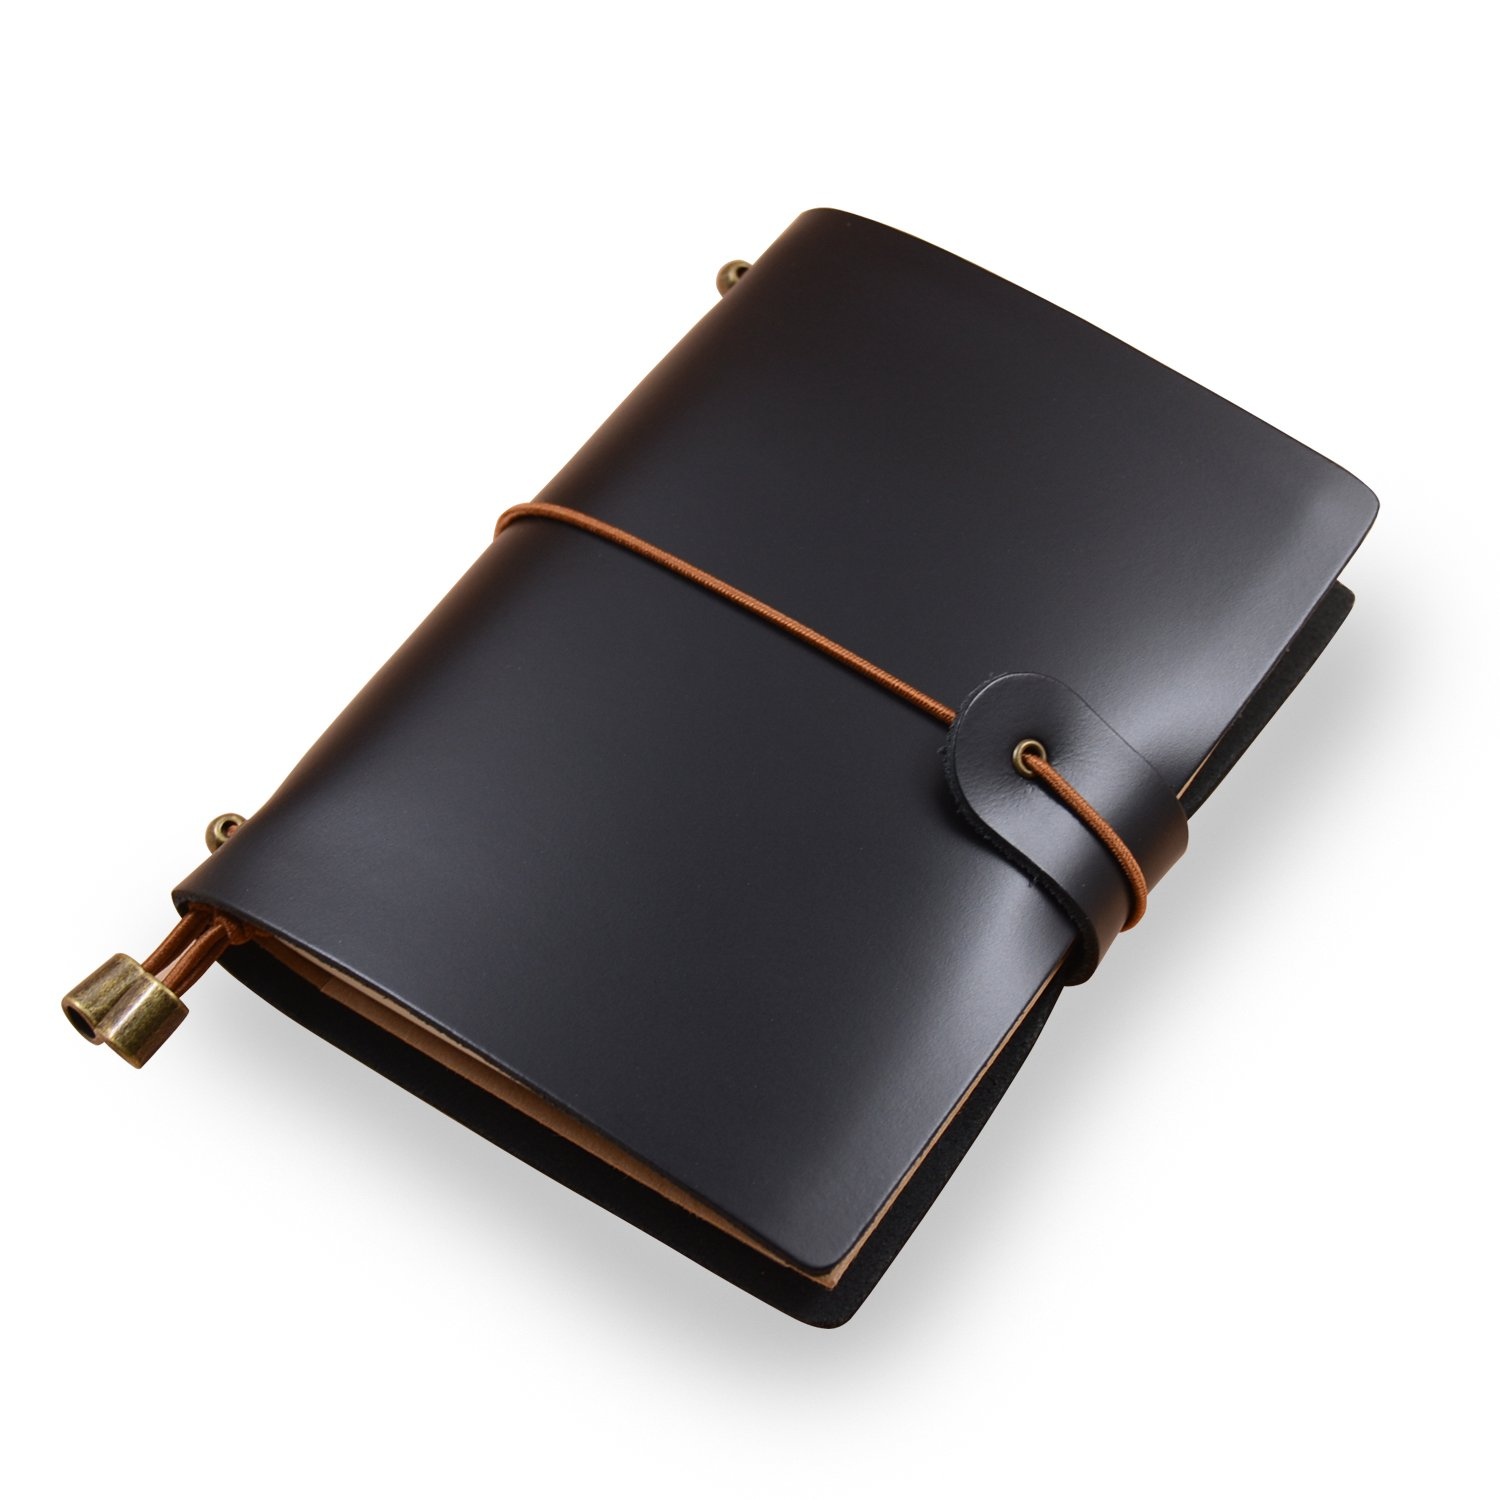 Classic Genuine Leather Soft Cover Notebook,Refillable Pages Leather Journal for Gifts,Diary,Handmade Personalized Traveler's Notebook(Passport Size) (Glossy Black)